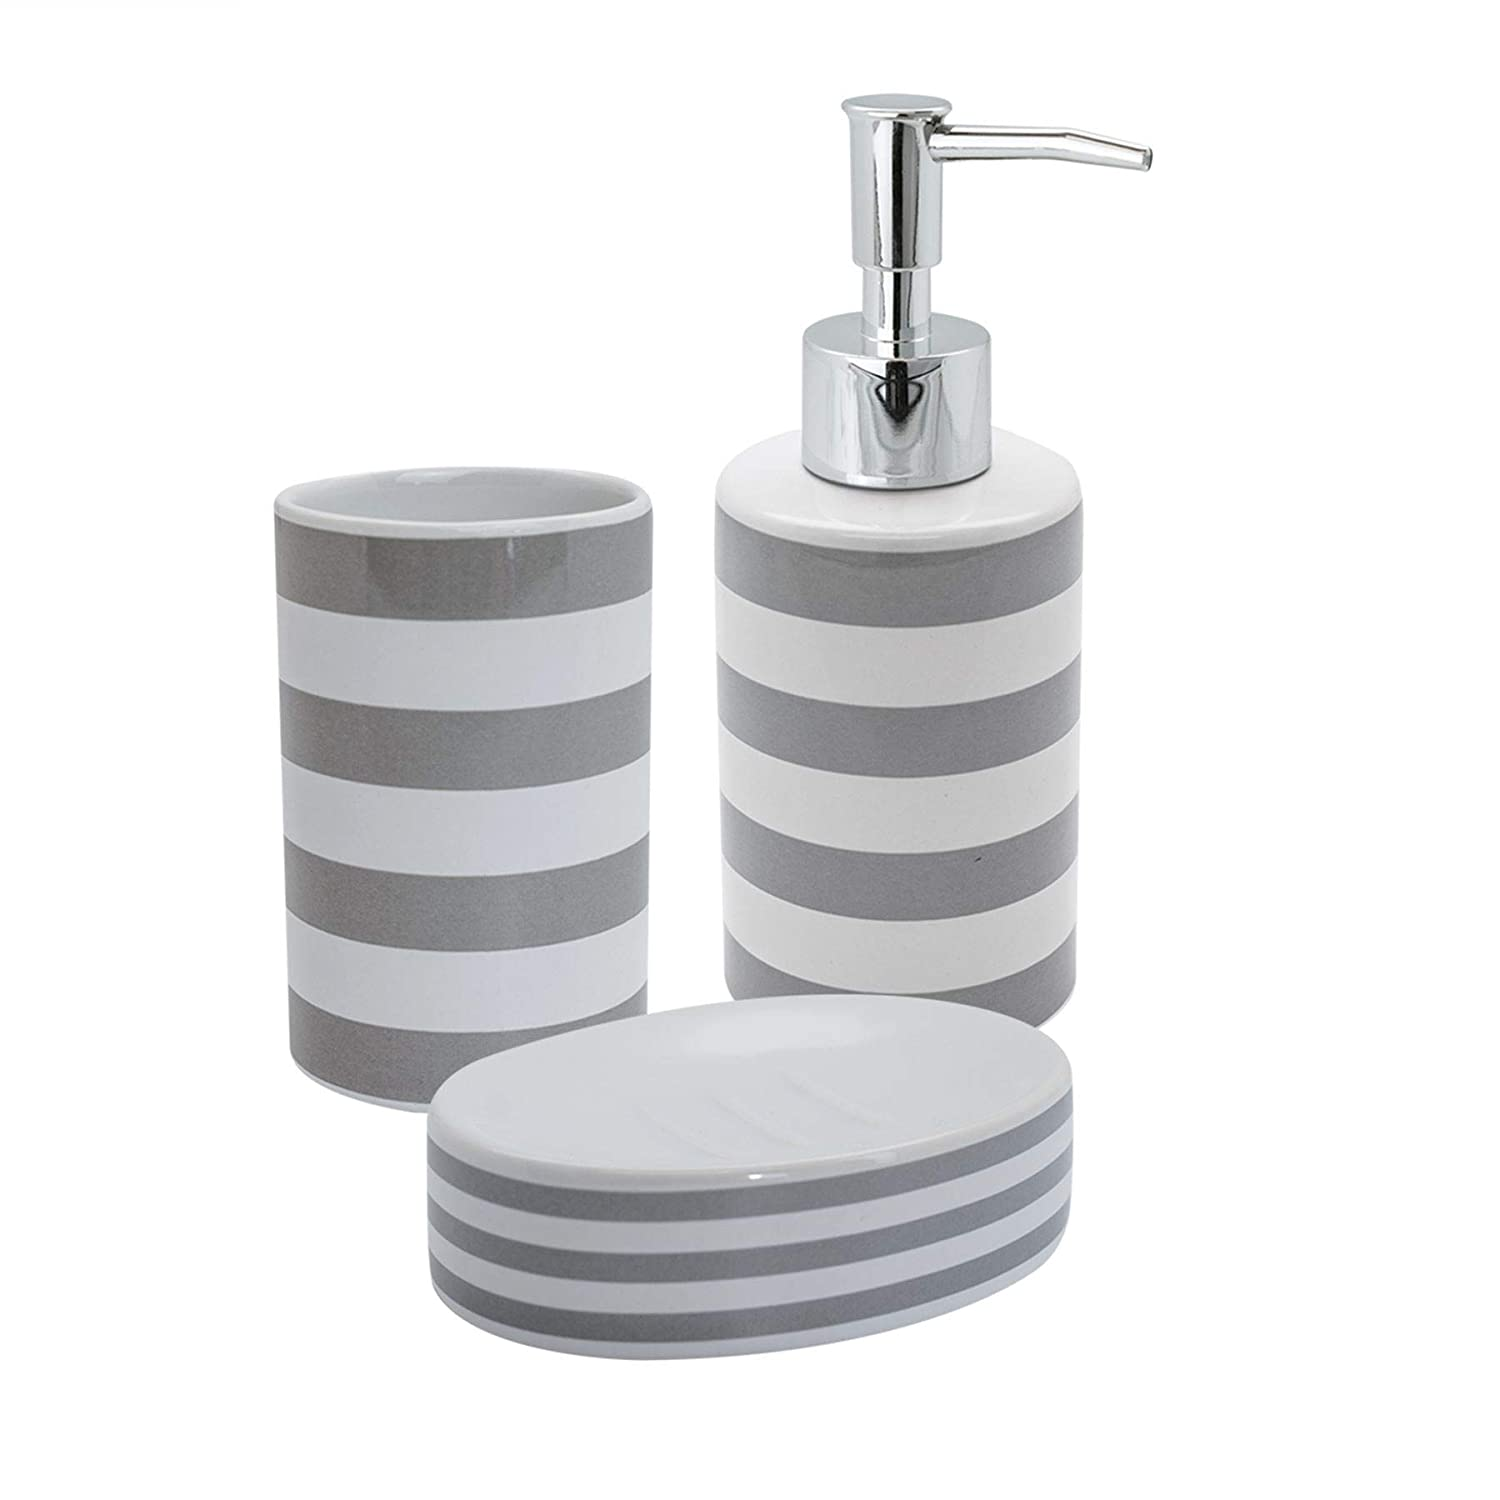 Harbour Housewares 3 Piece Bathroom Accessory Set - Soap Dispenser/Dish / Tumbler - Grey Stripe